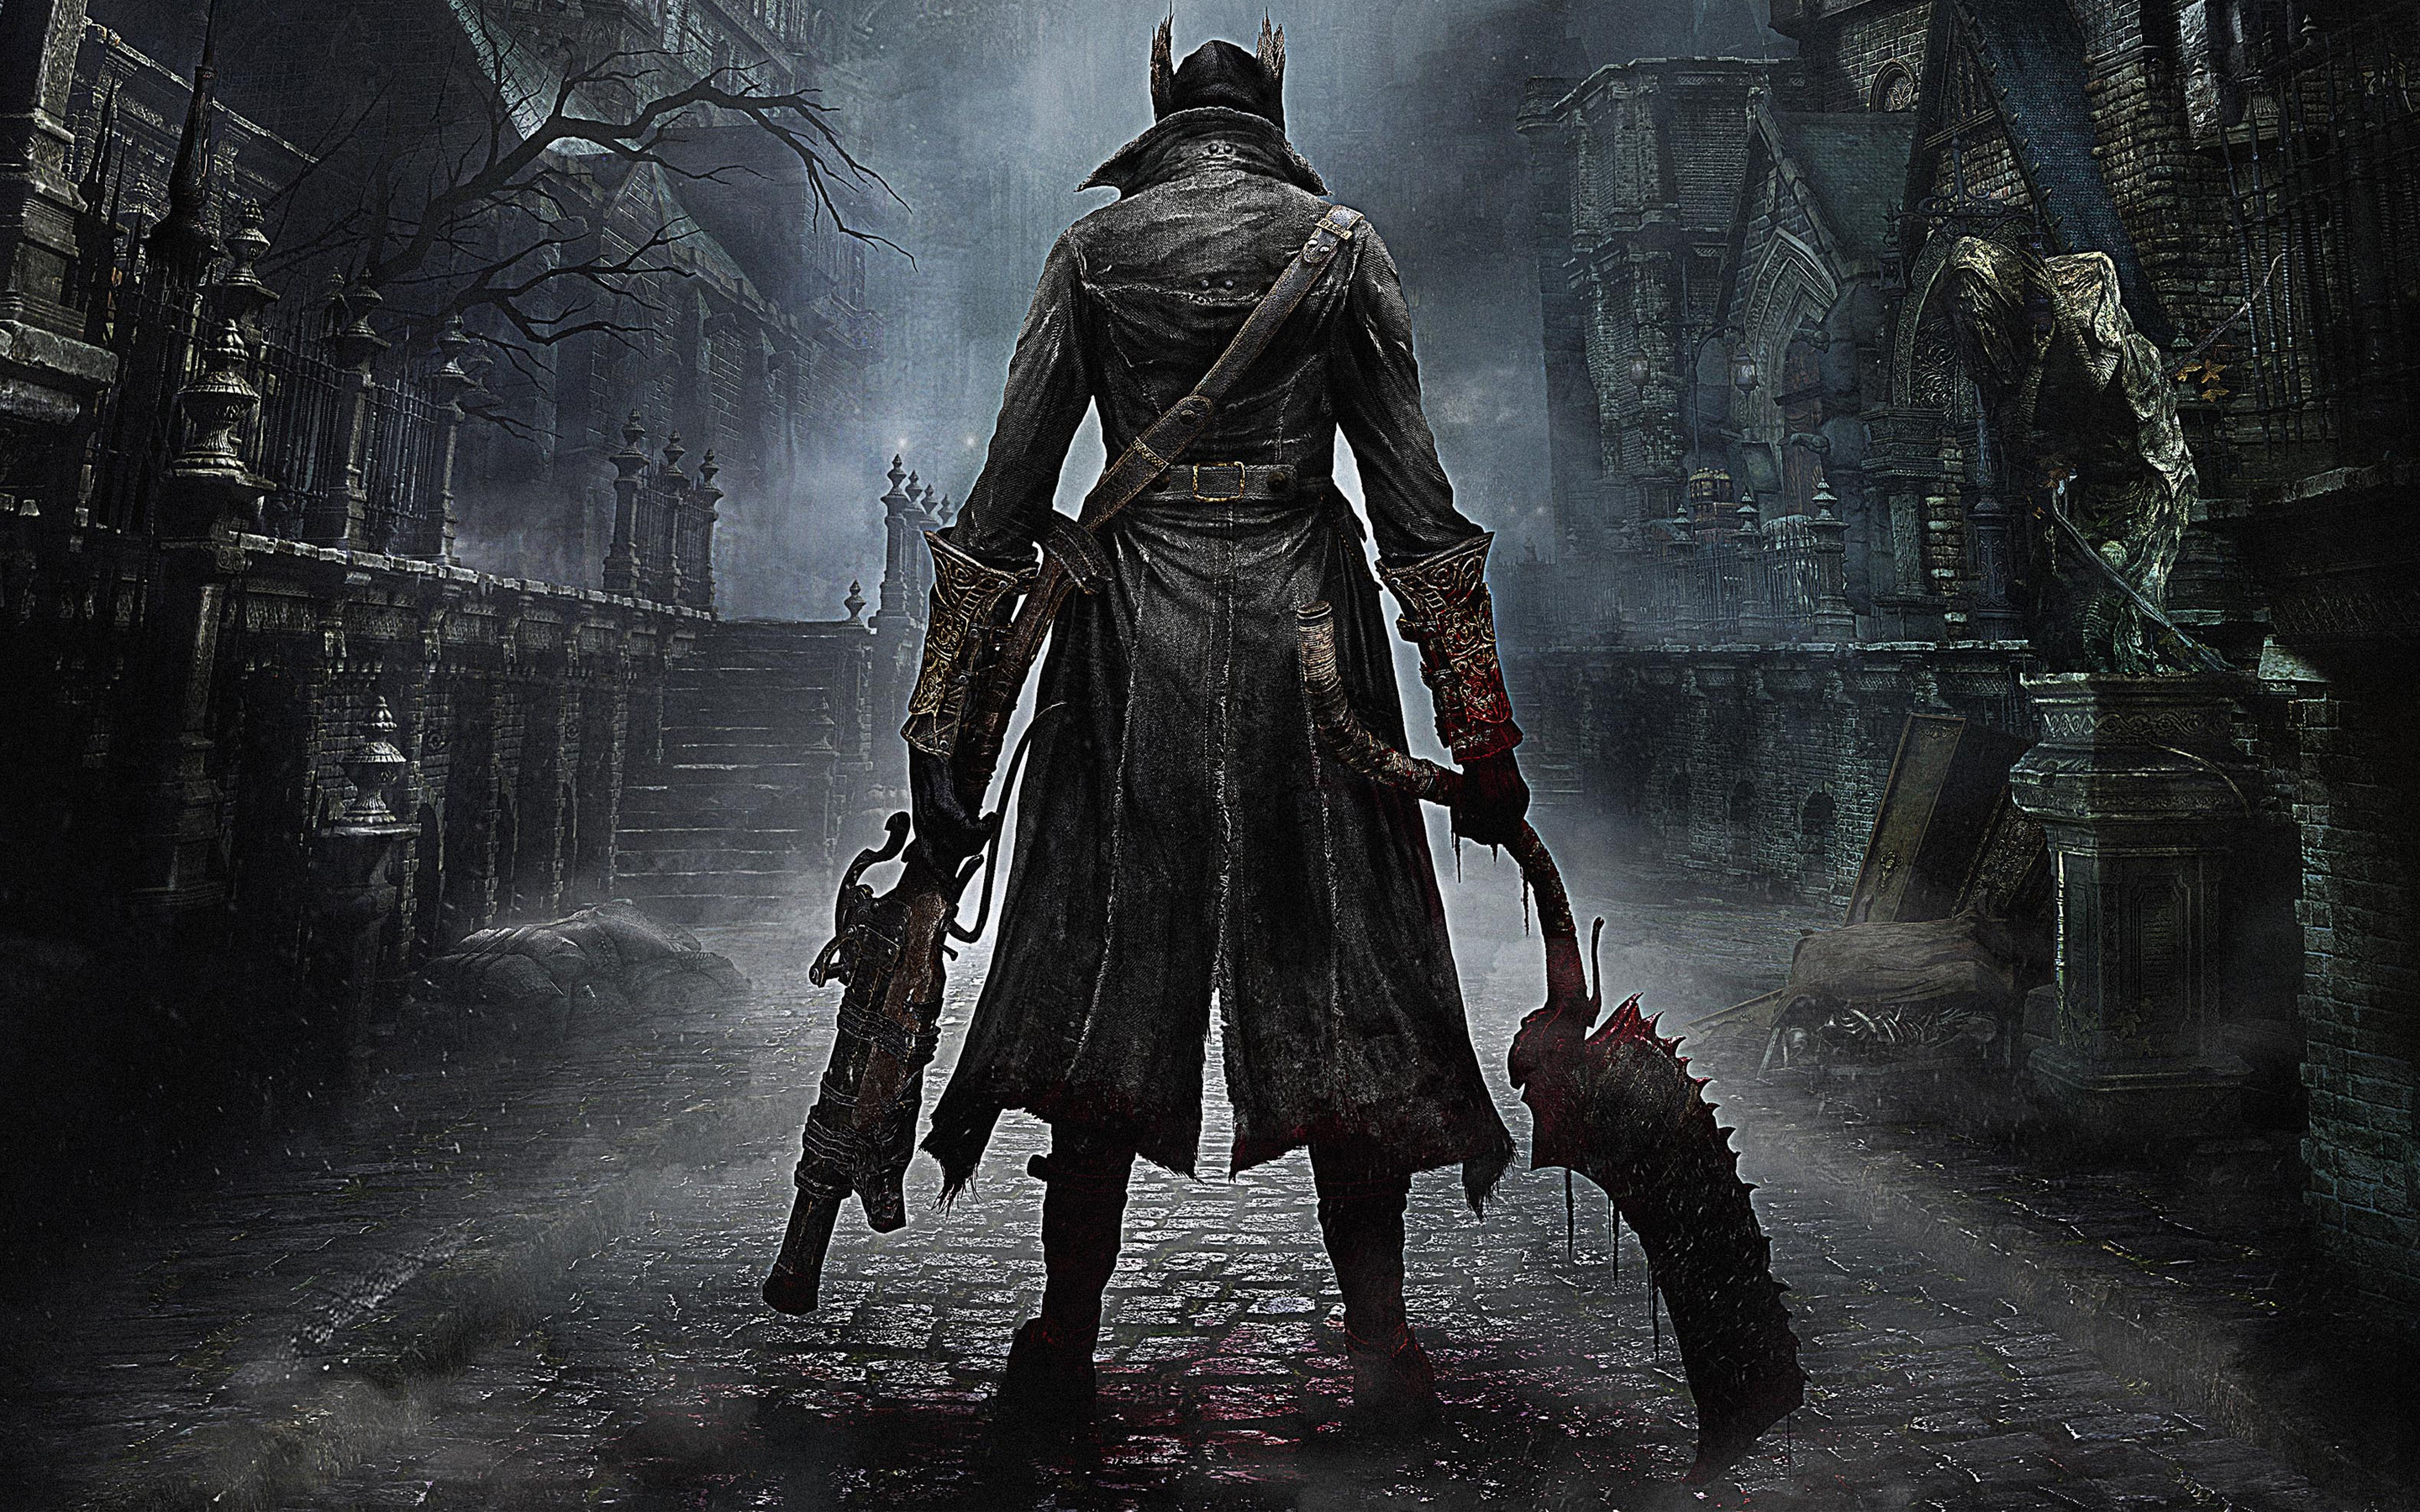 A review and rumor of the PS4 game, Bloodborne